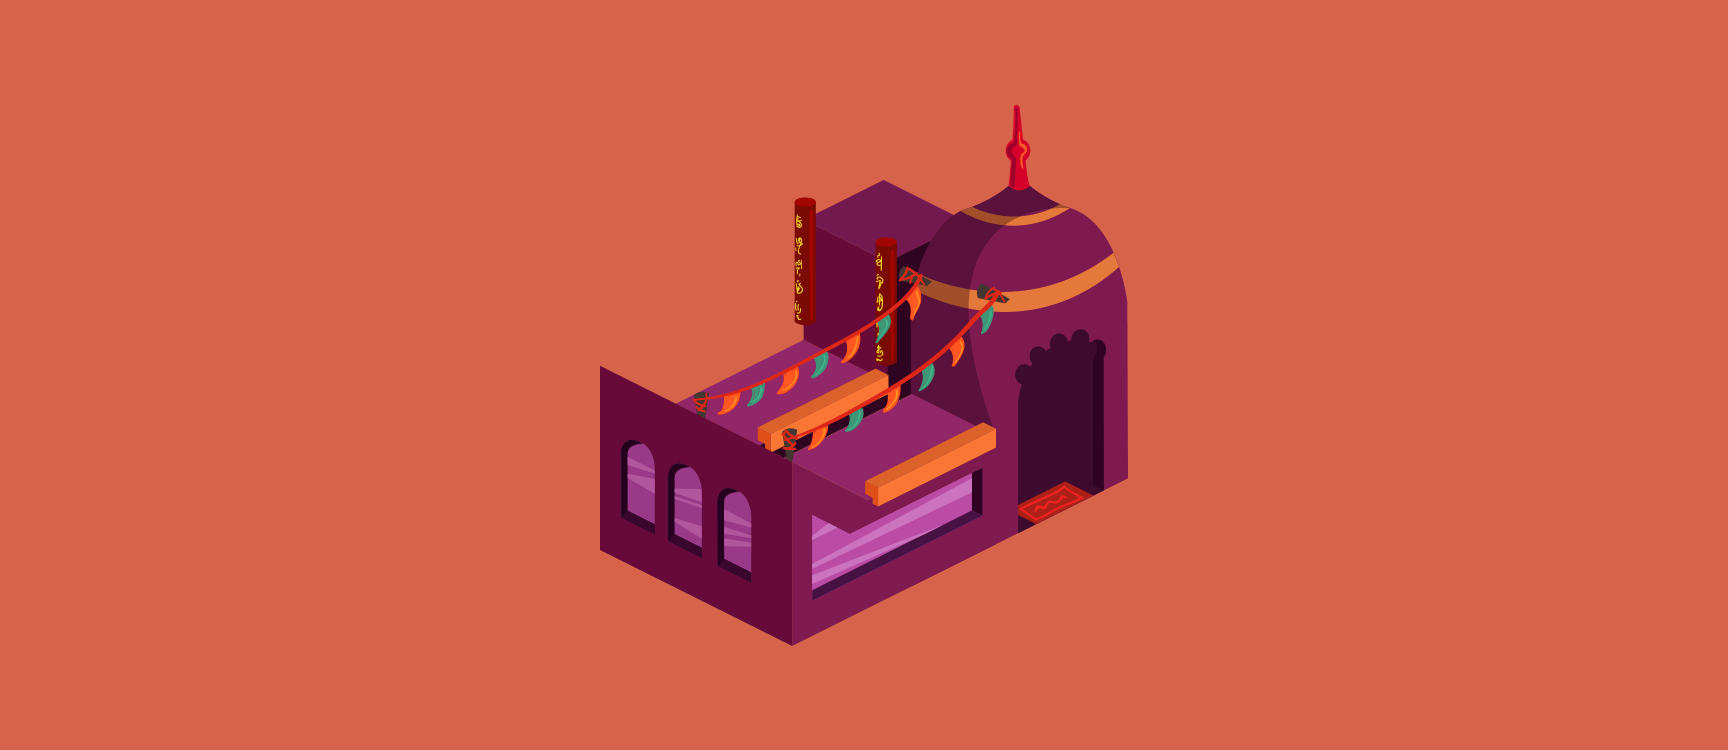 Indian Restaurant Illustration 3